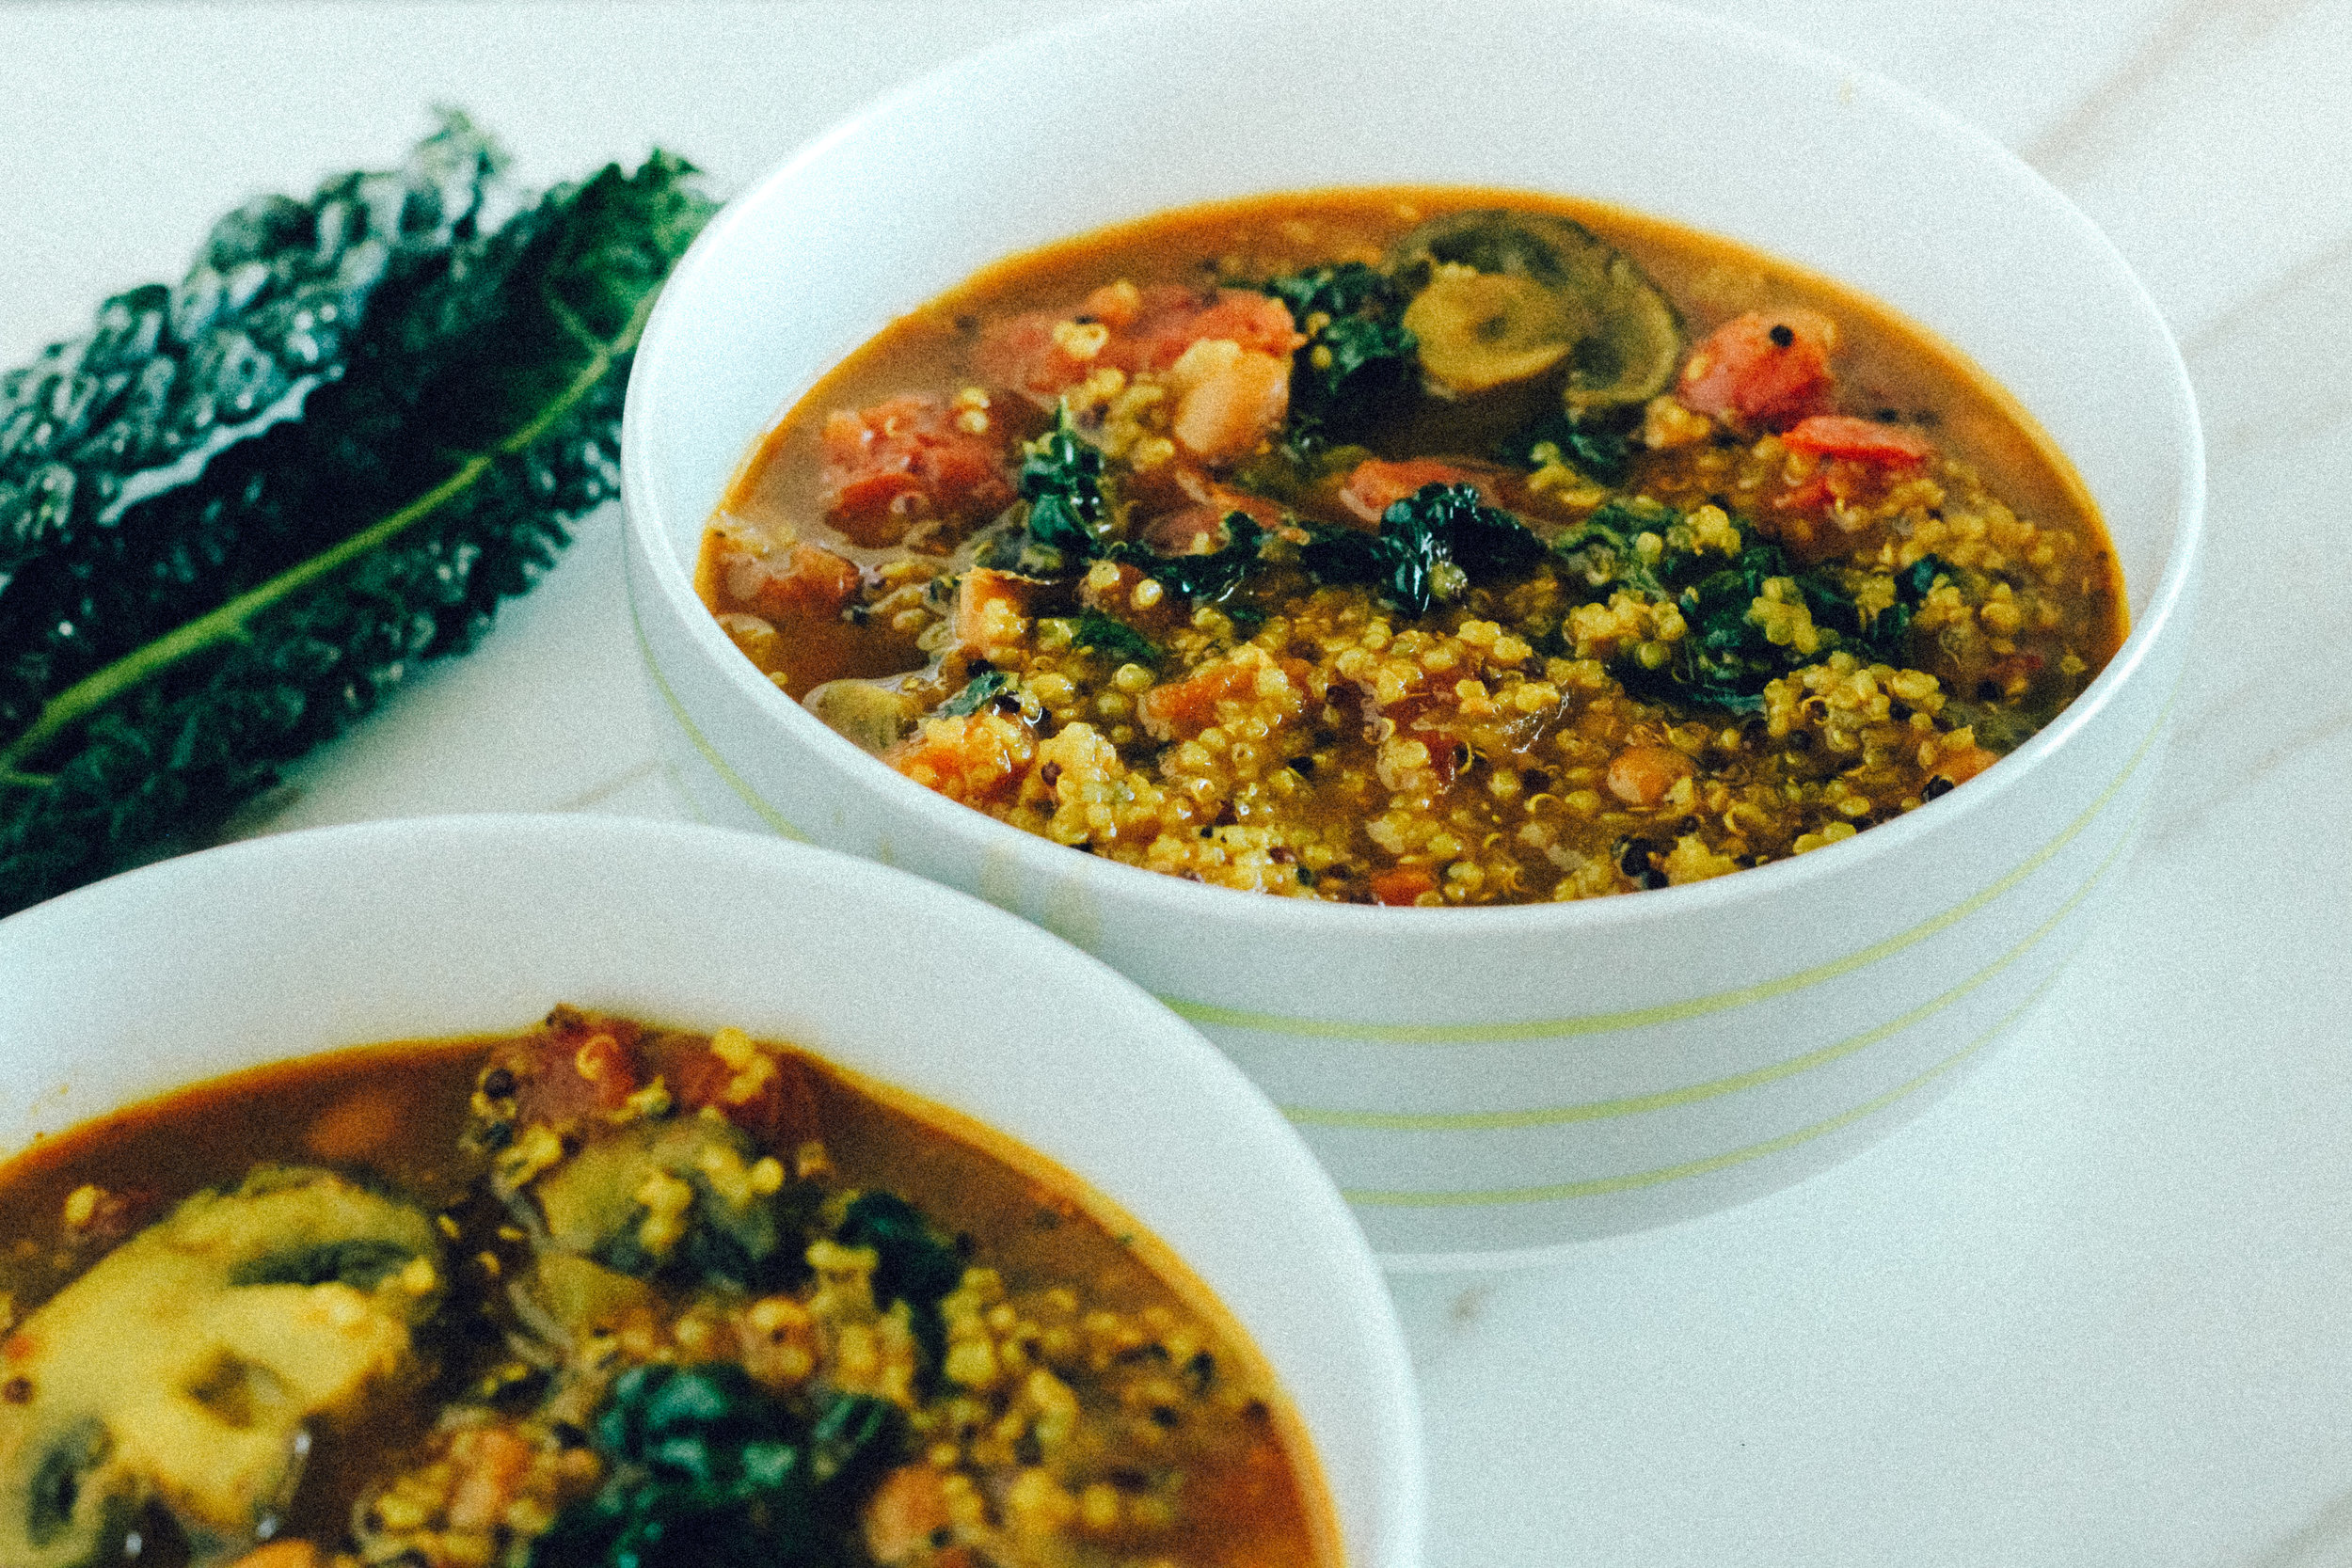 Southwestern Kale and Quinoa Soup